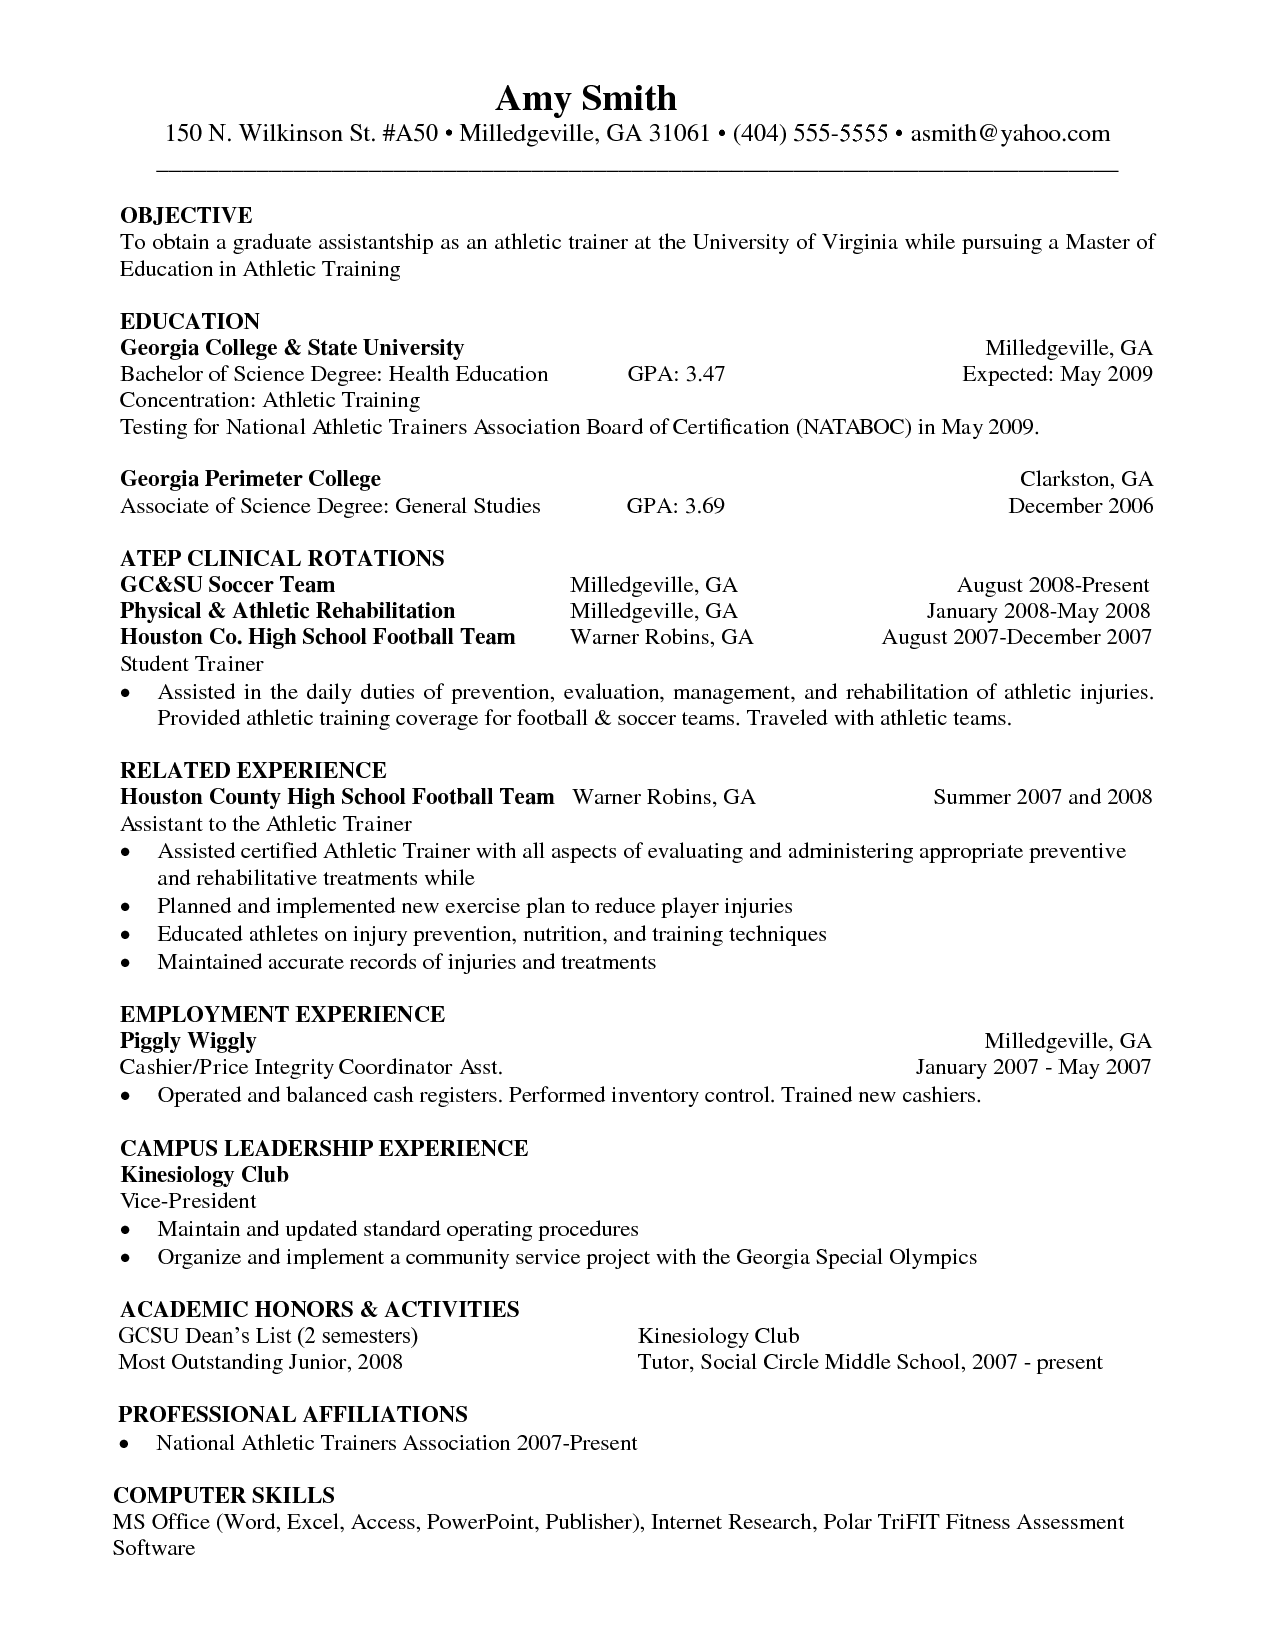 Athletic Trainer Resume Athletic training, Resume skills